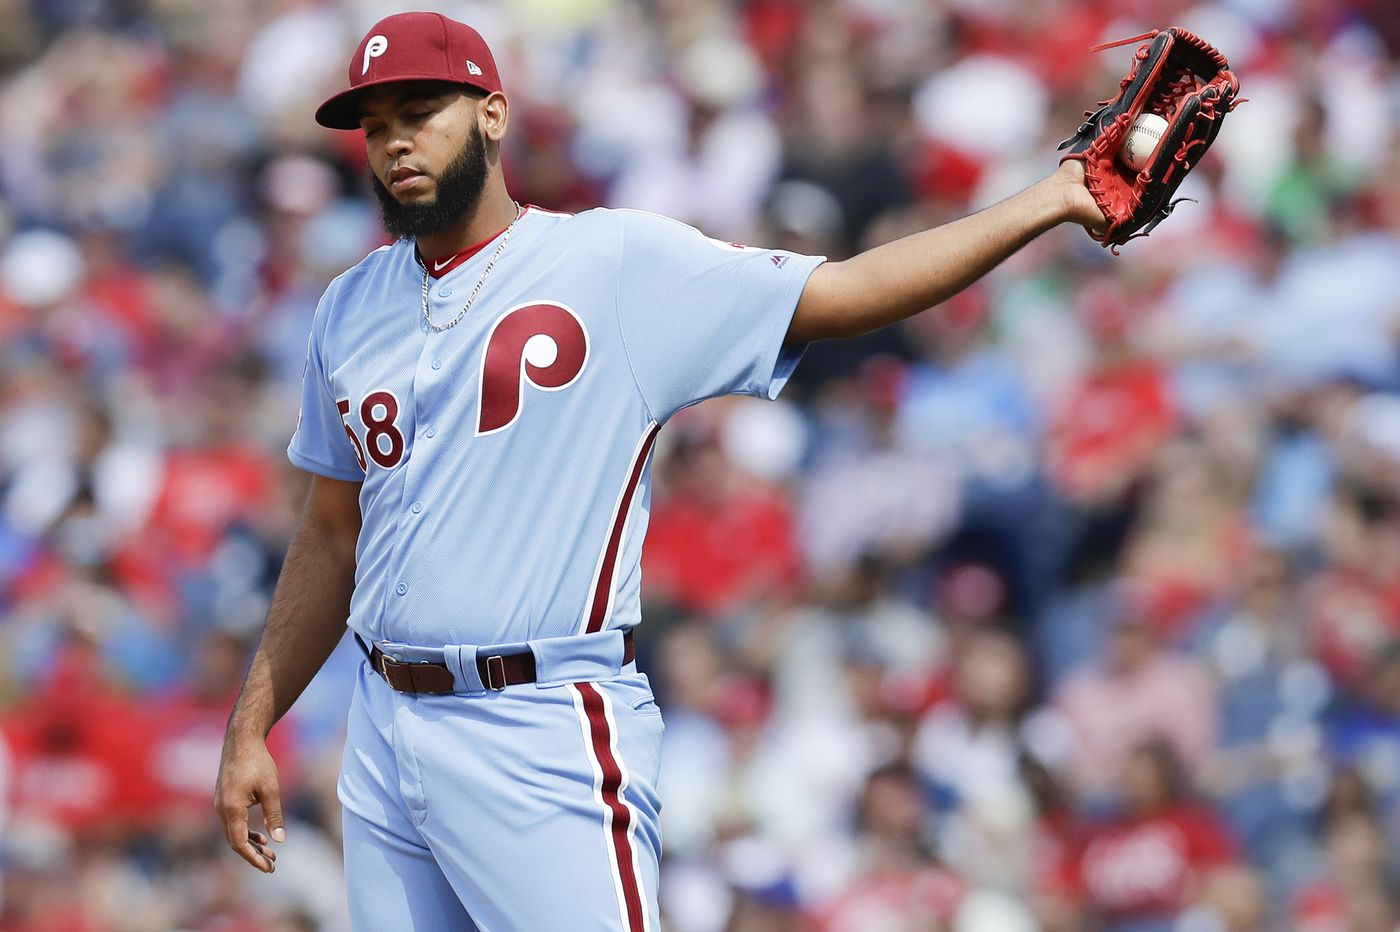 Seranthony Dominguez (remember him?) could be the bullpen upgrade the Phillies need. But will he get healthy? | Scott Lauber